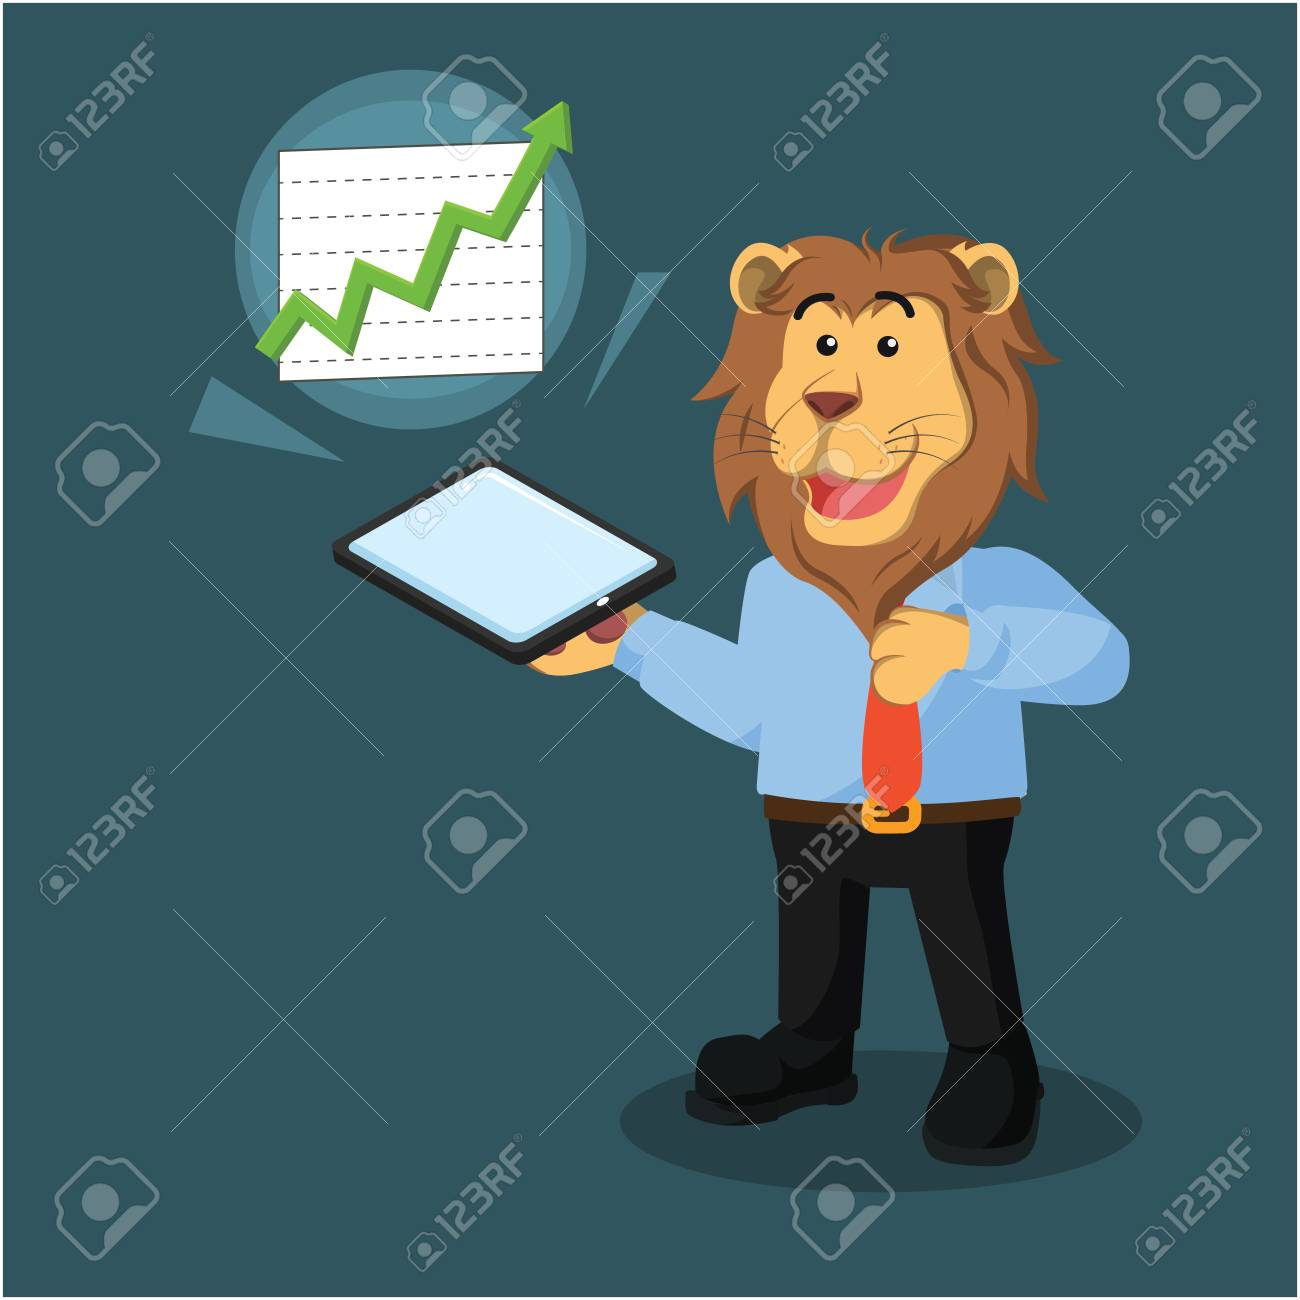 hight resolution of business lion with phone poping out diagram stock vector 69470028